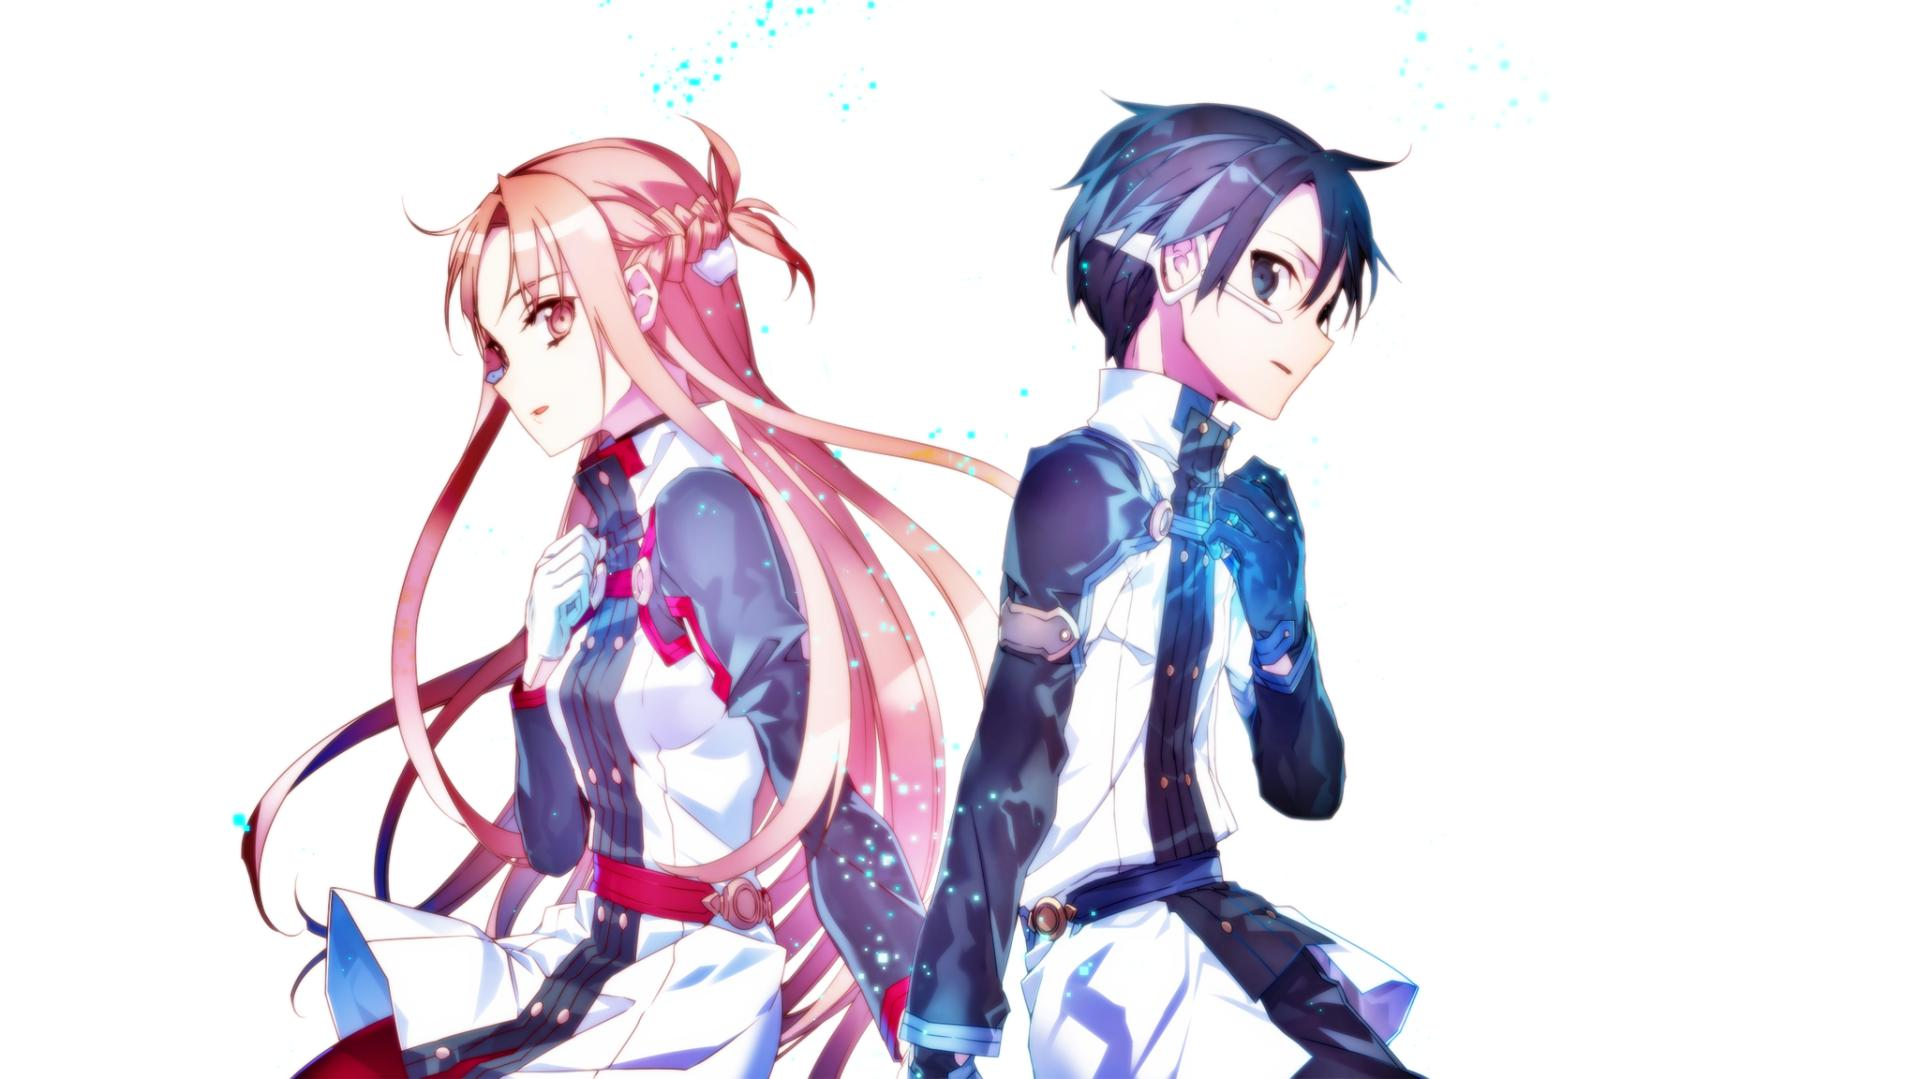 sword art online movie - photo #22